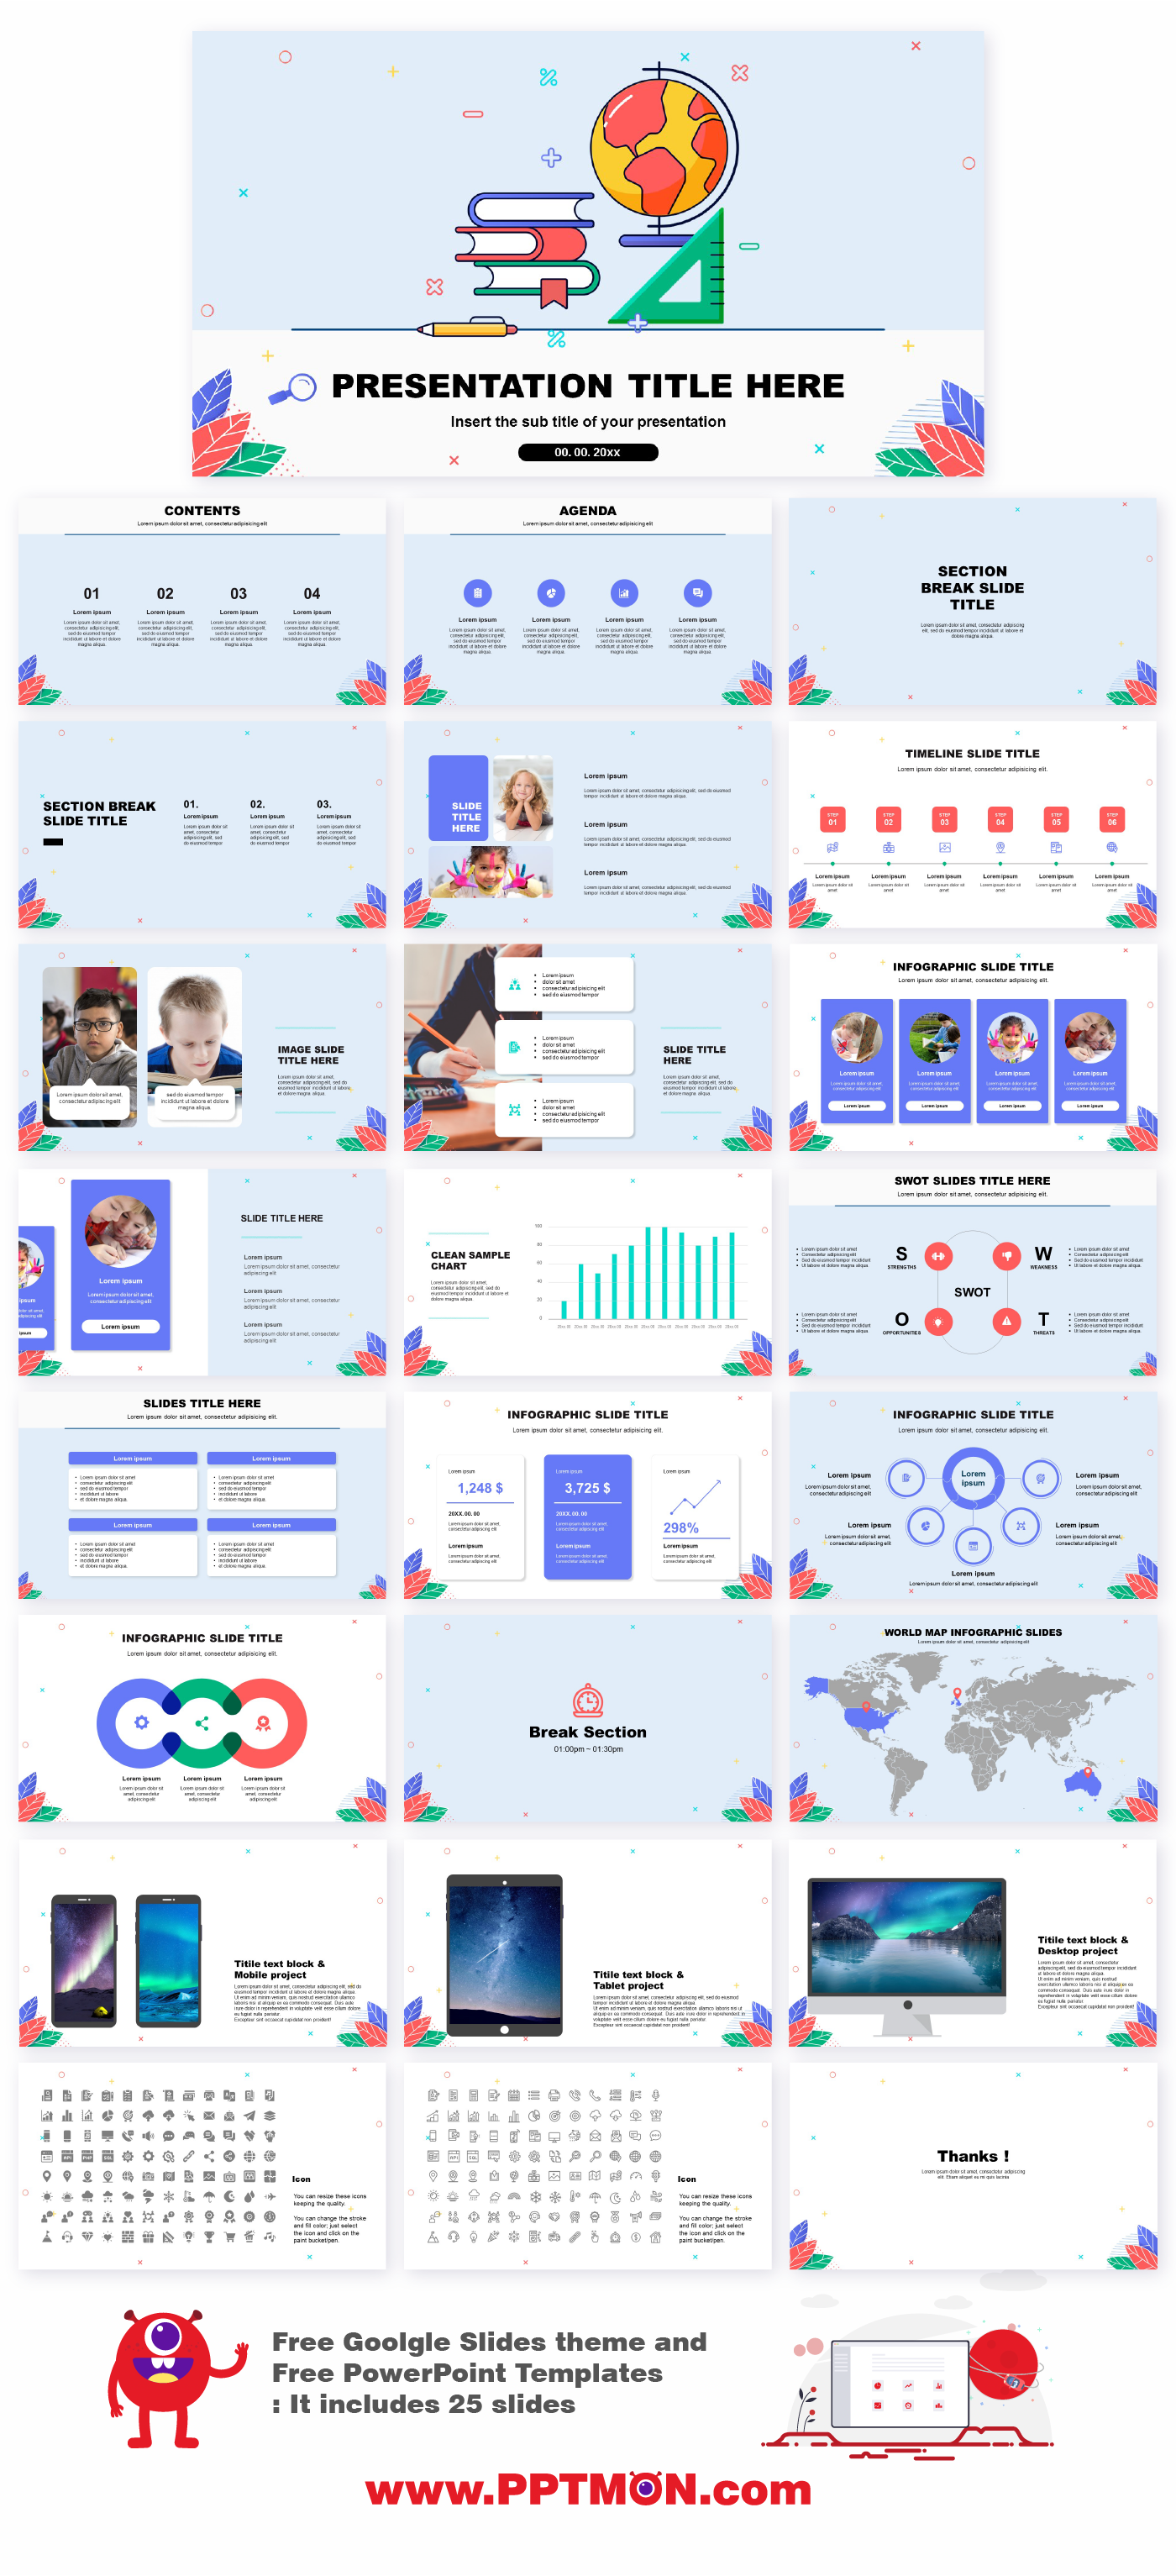 Education Design Free powerpoint templates and Google